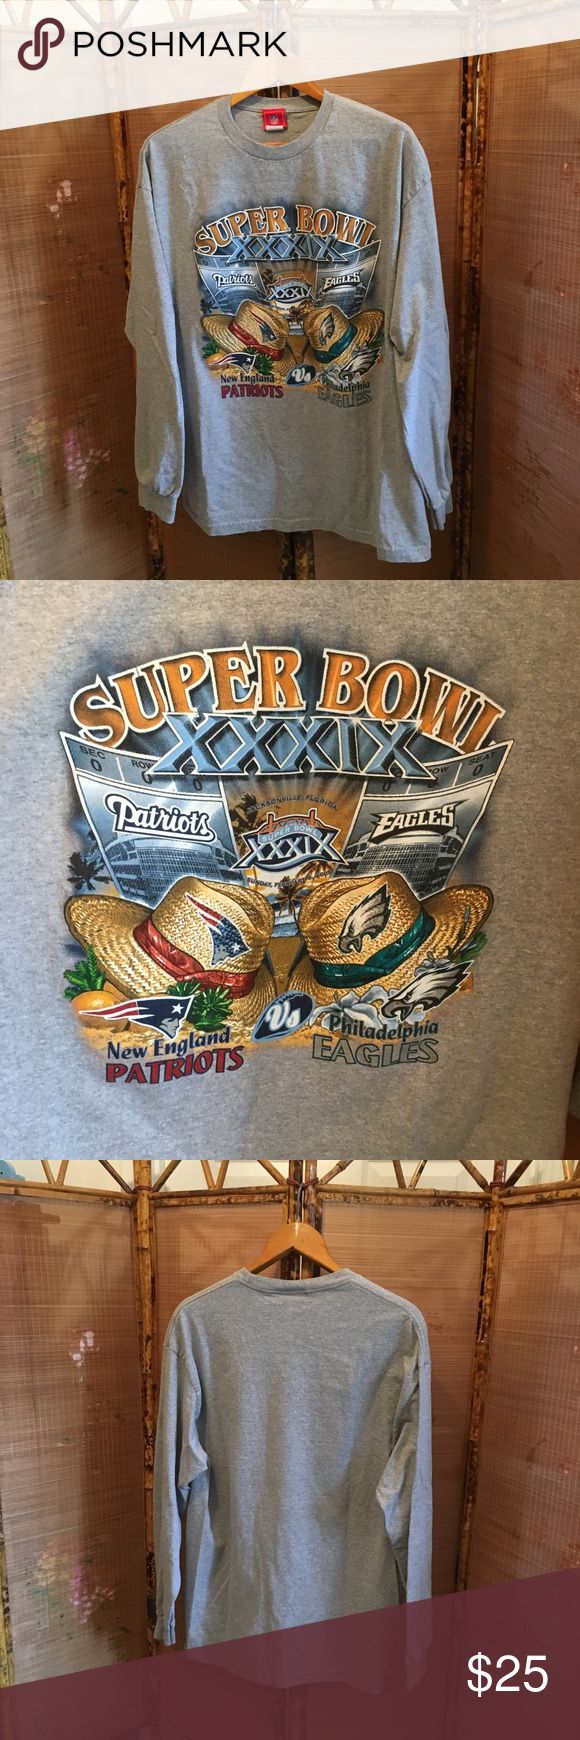 2005 Super Bowl XXXIX long sleeve tee shirt NWOT NFL 90% cotton 10% polyester pre-shrunk gray long sleeve tee shirt from 2005 Super Bowl XXXIX. This game between New England Patriots and Philadelphia Eagles was the only one held in Jacksonville Florida to date. Shirt front has the game information, logo, and tan straw hats instead of helmets, all in both teams' colors. Ribbed neckline and cuffs. Back is solid gray. All items come from a smoke free home. Measurements available upon request…